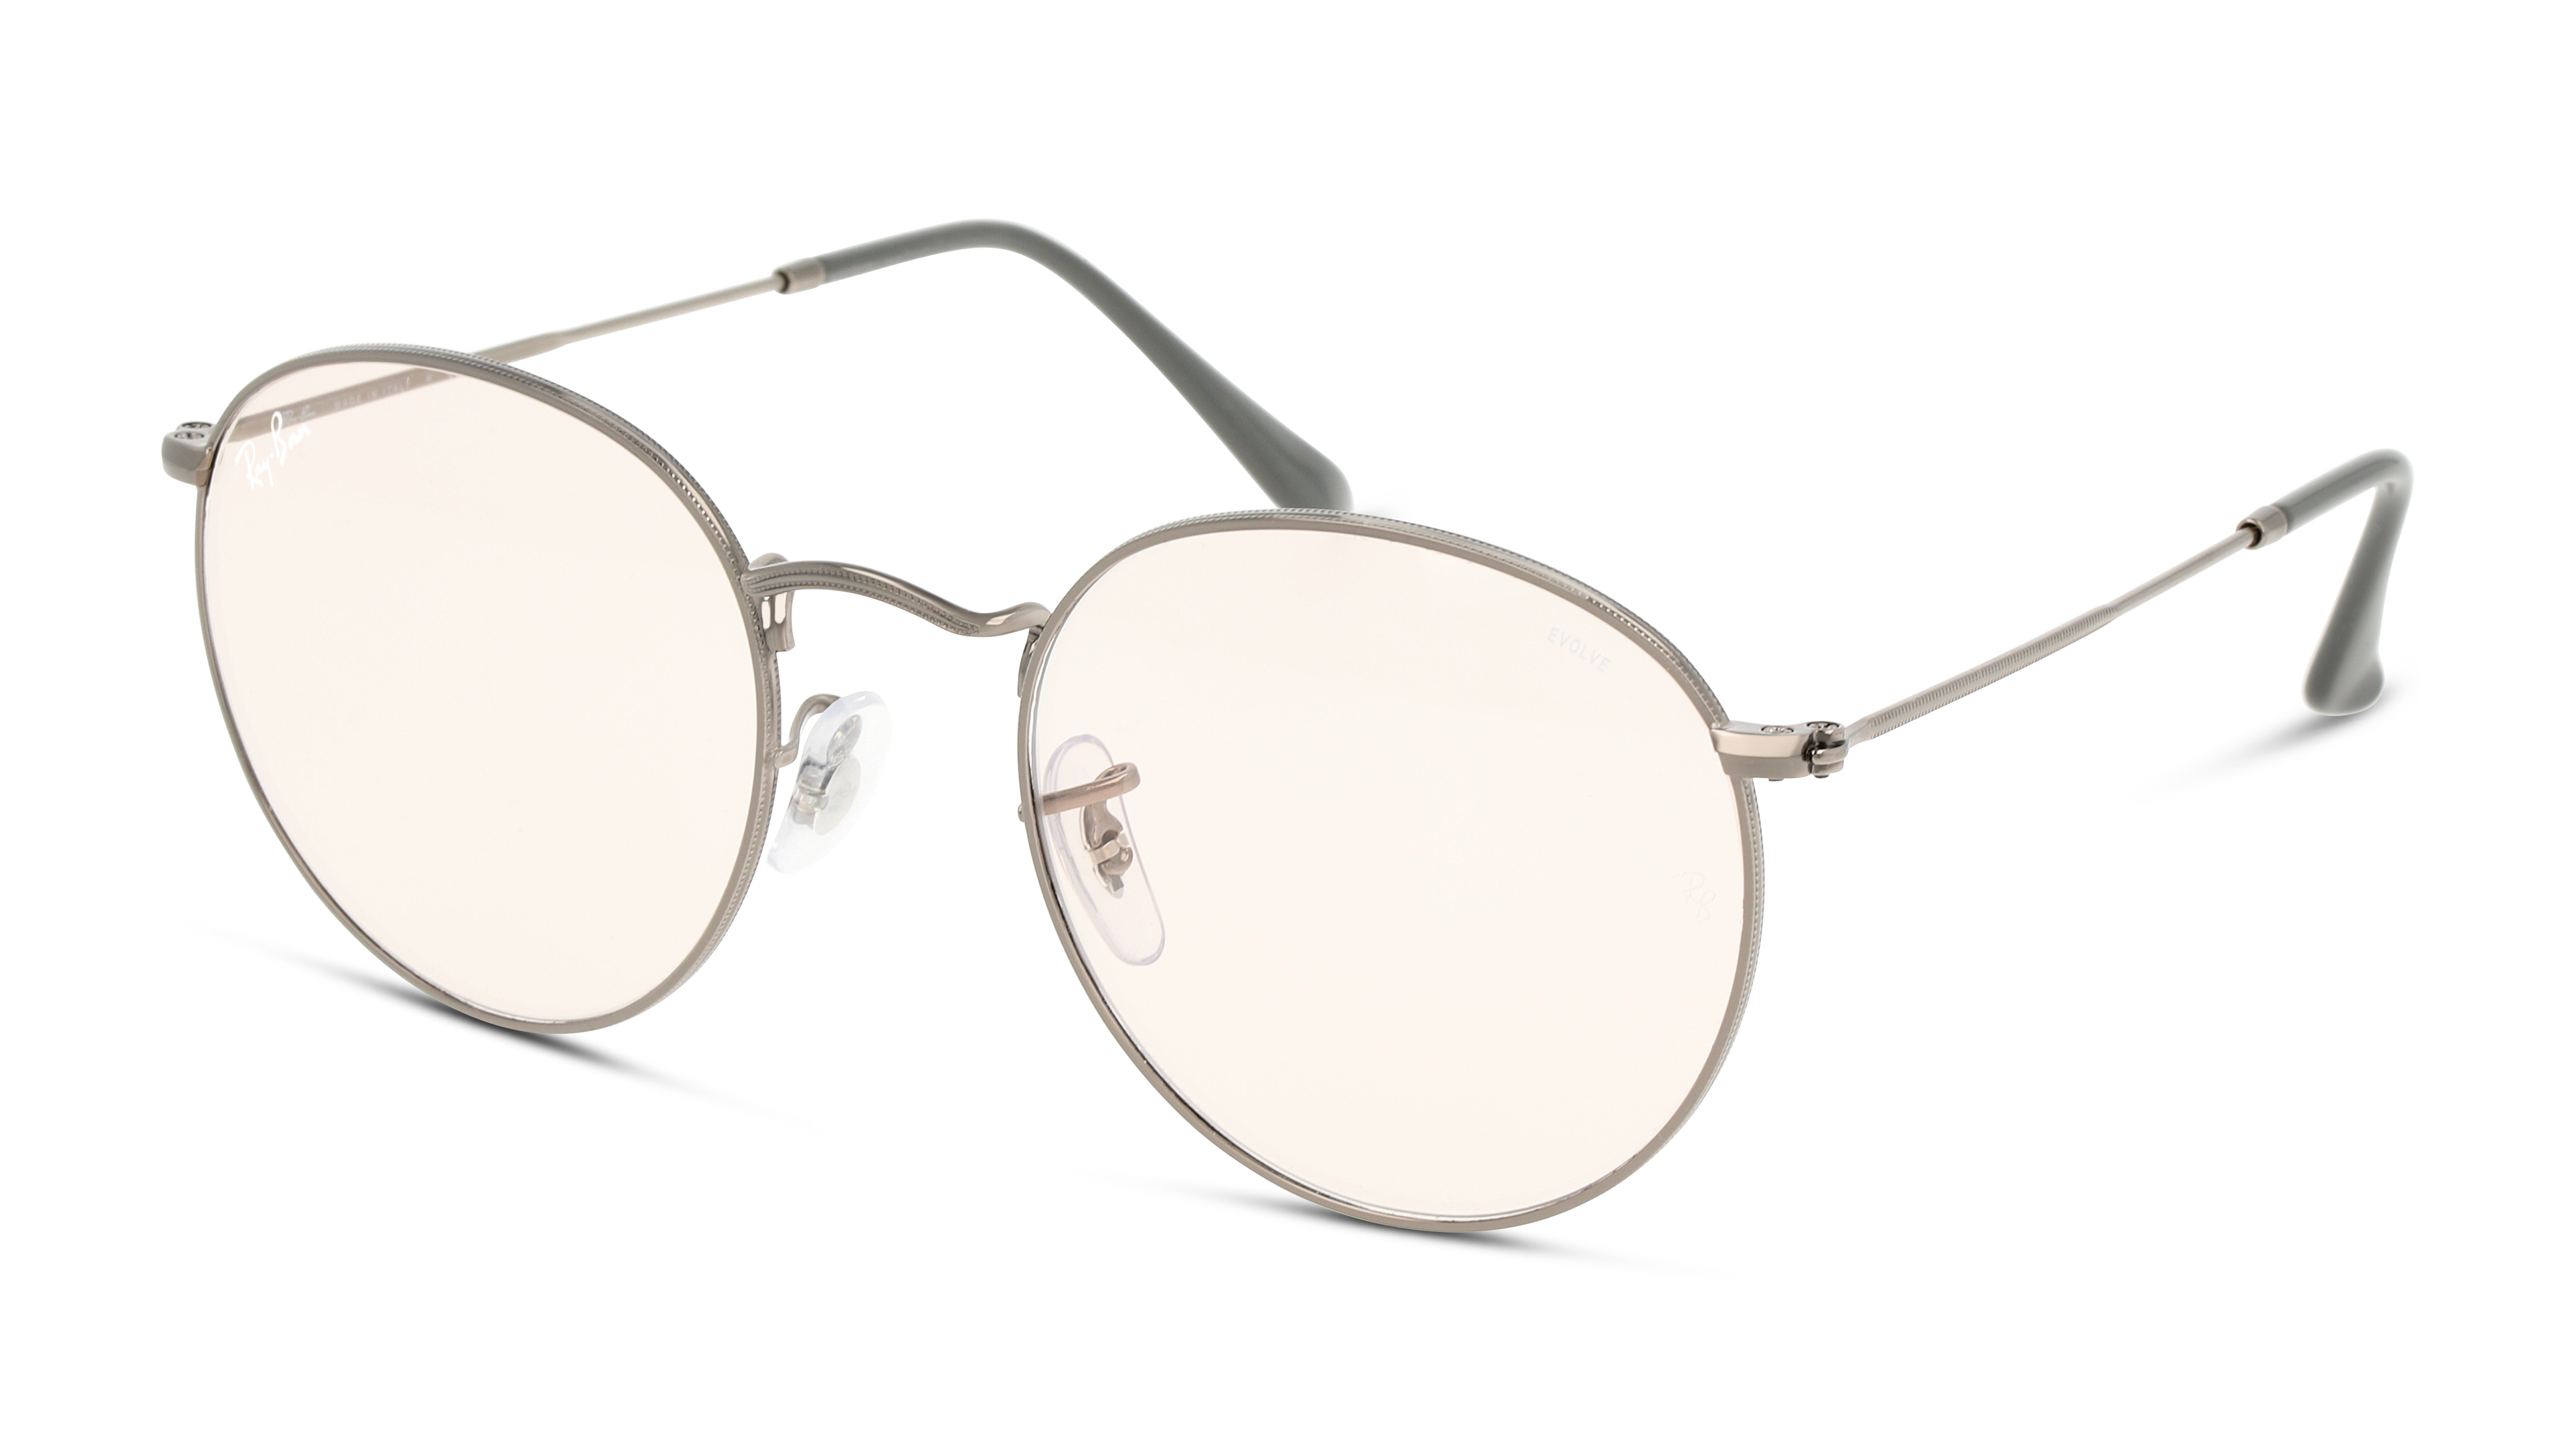 Angle_Left01 Ray-Ban Ray-Ban 0RB3447 004/T5 53/21 Grijs/Roze